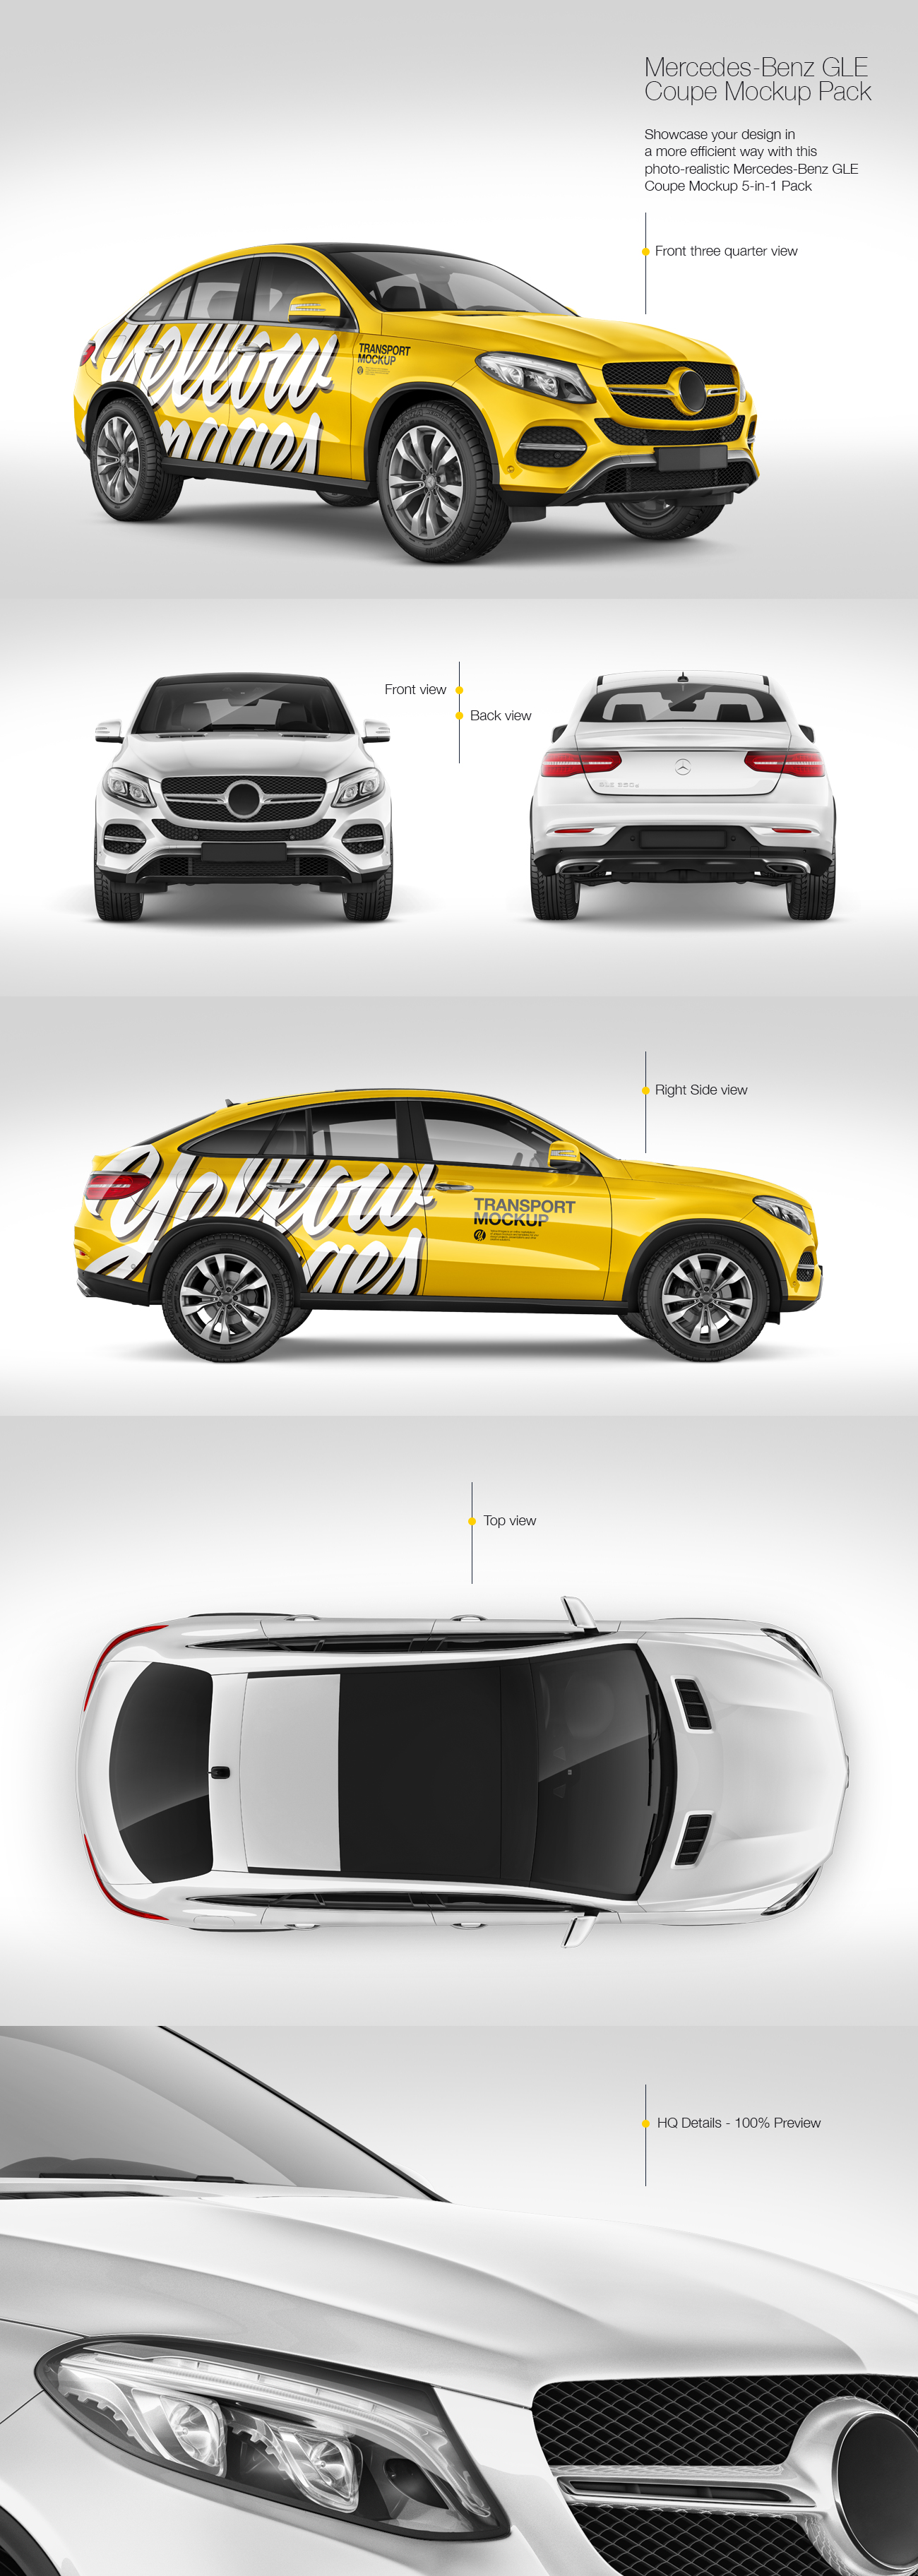 Mercedes-Benz GLE Coupe 2016 Mockup Pack